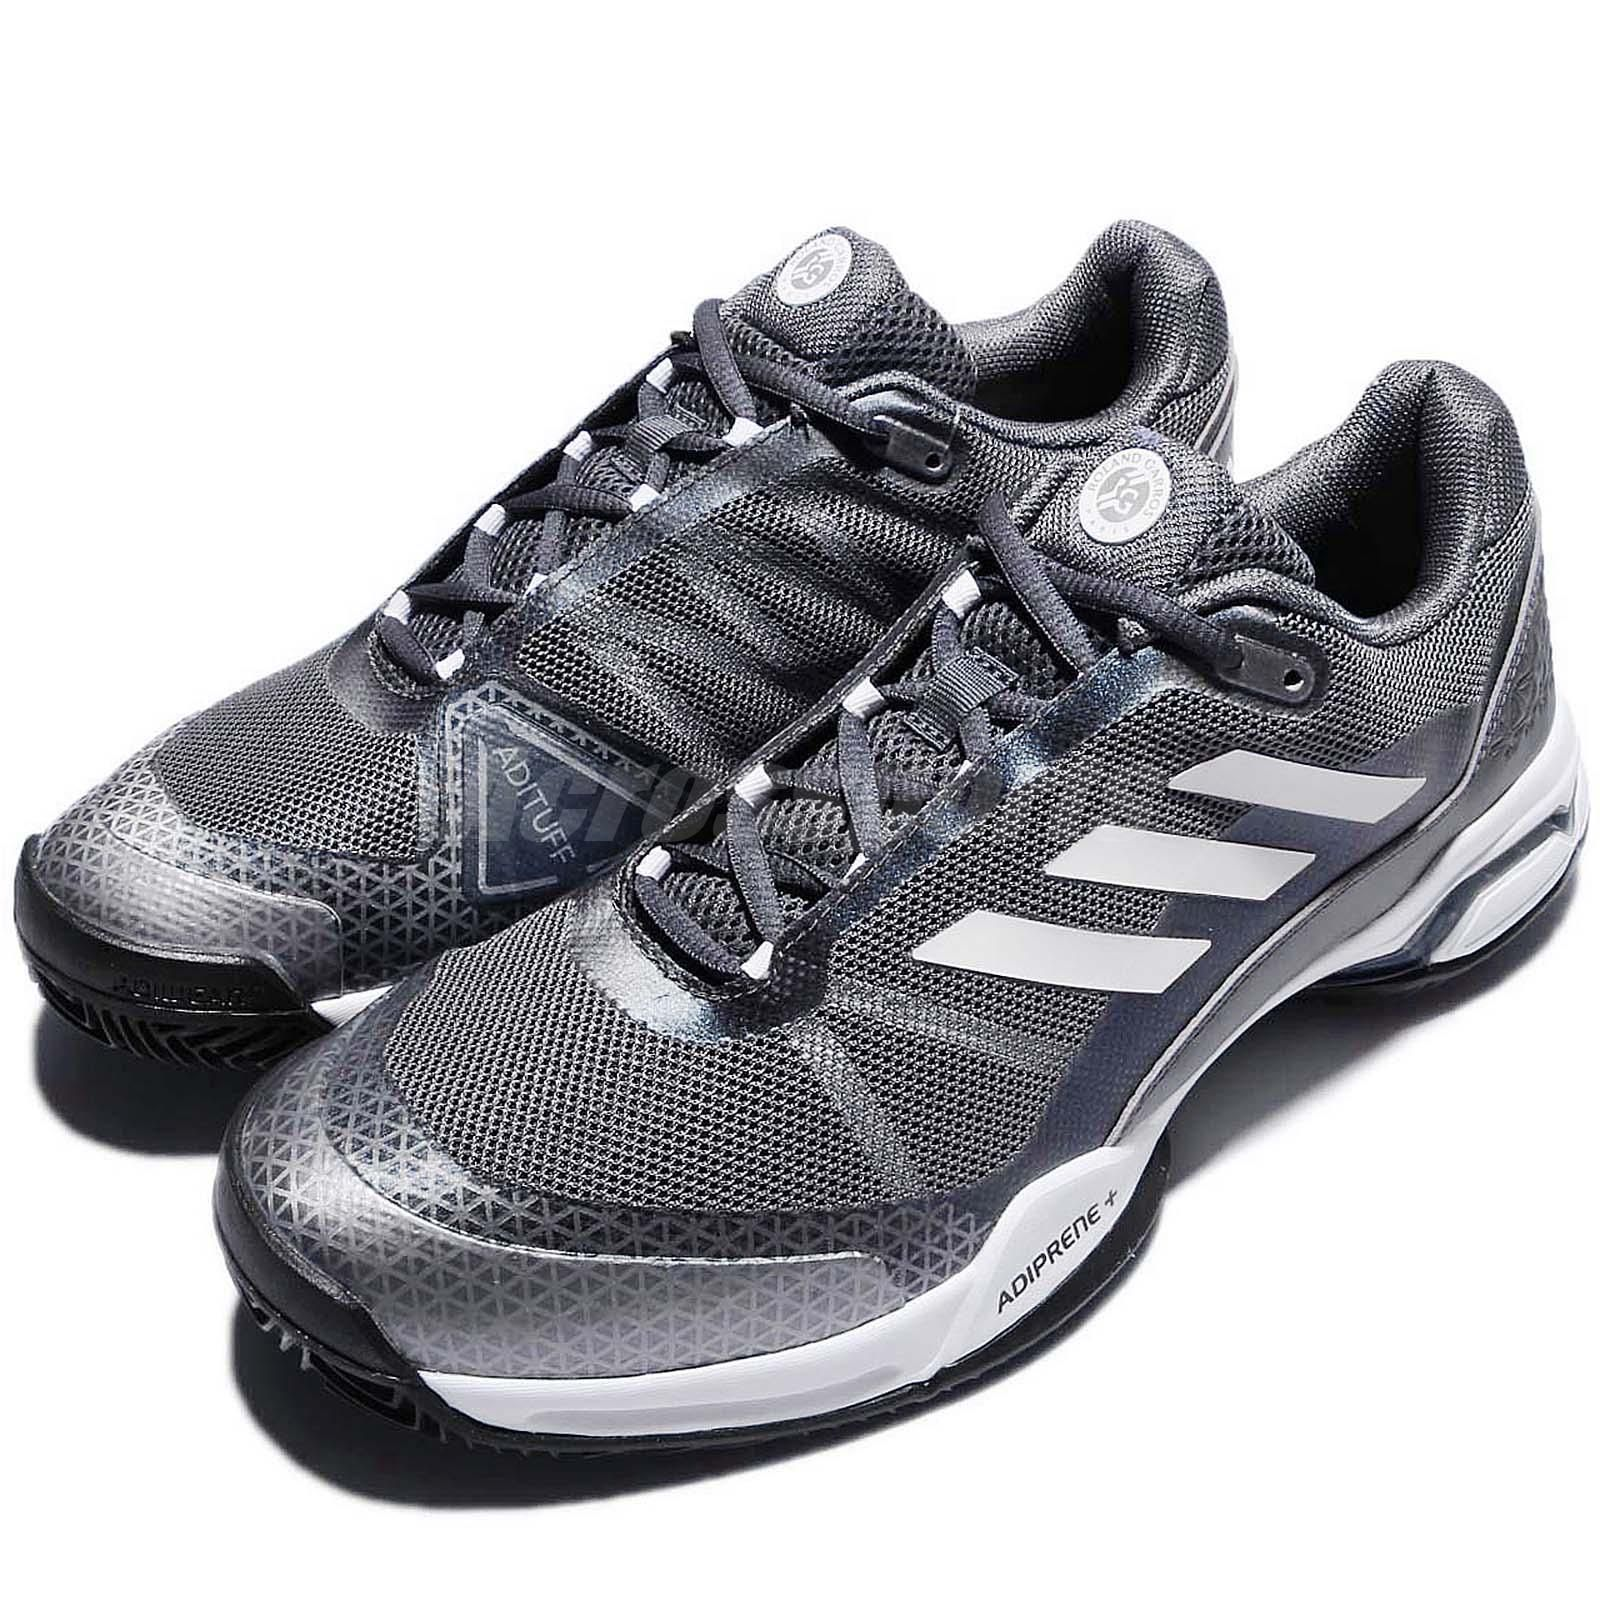 hot sales 574c9 422f4 adidas Barricade Club Clay Grey Silver Men Tennis Shoes Sneakers Trainers  BA9155